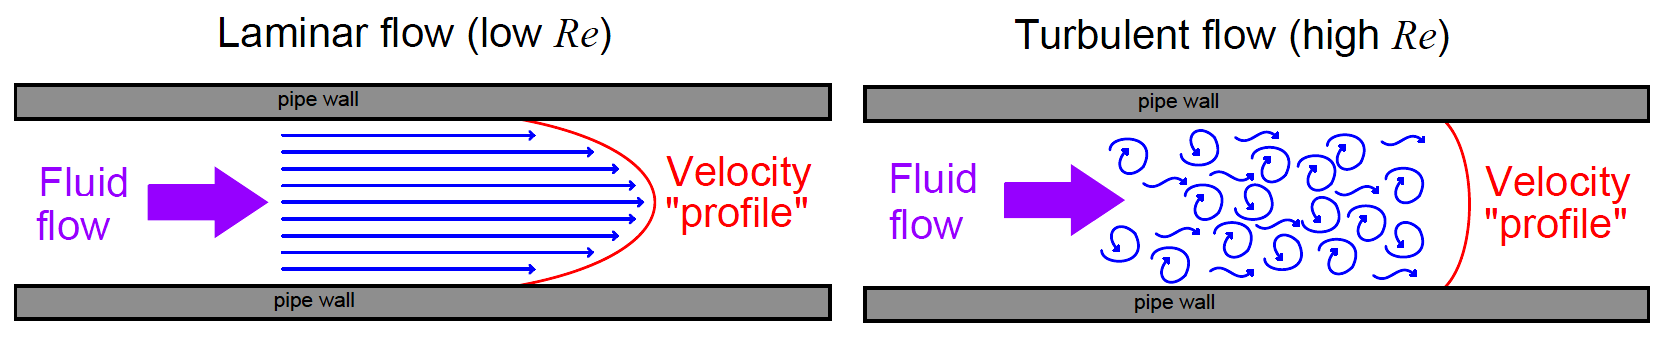 ultrasonic flowmeter Turbulent flow